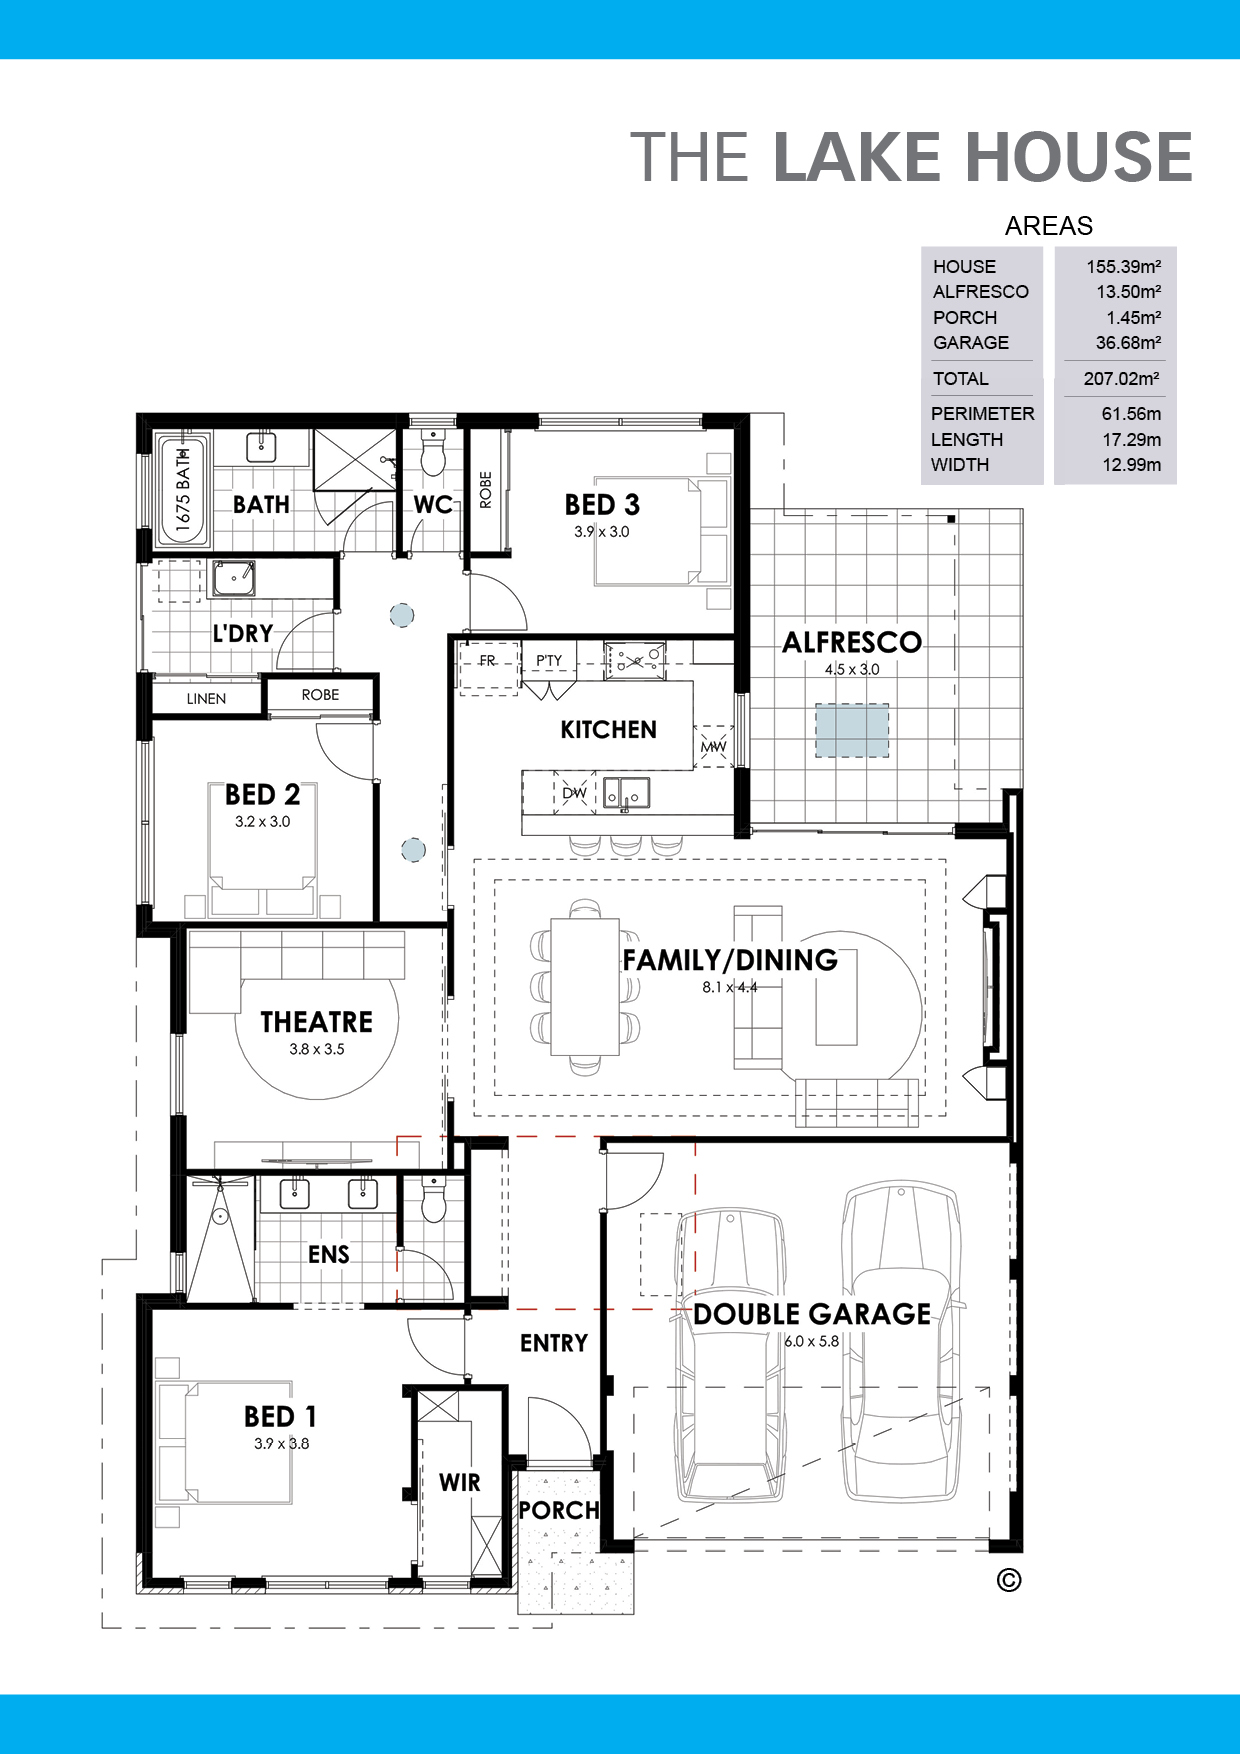 The Lake House Floorplan